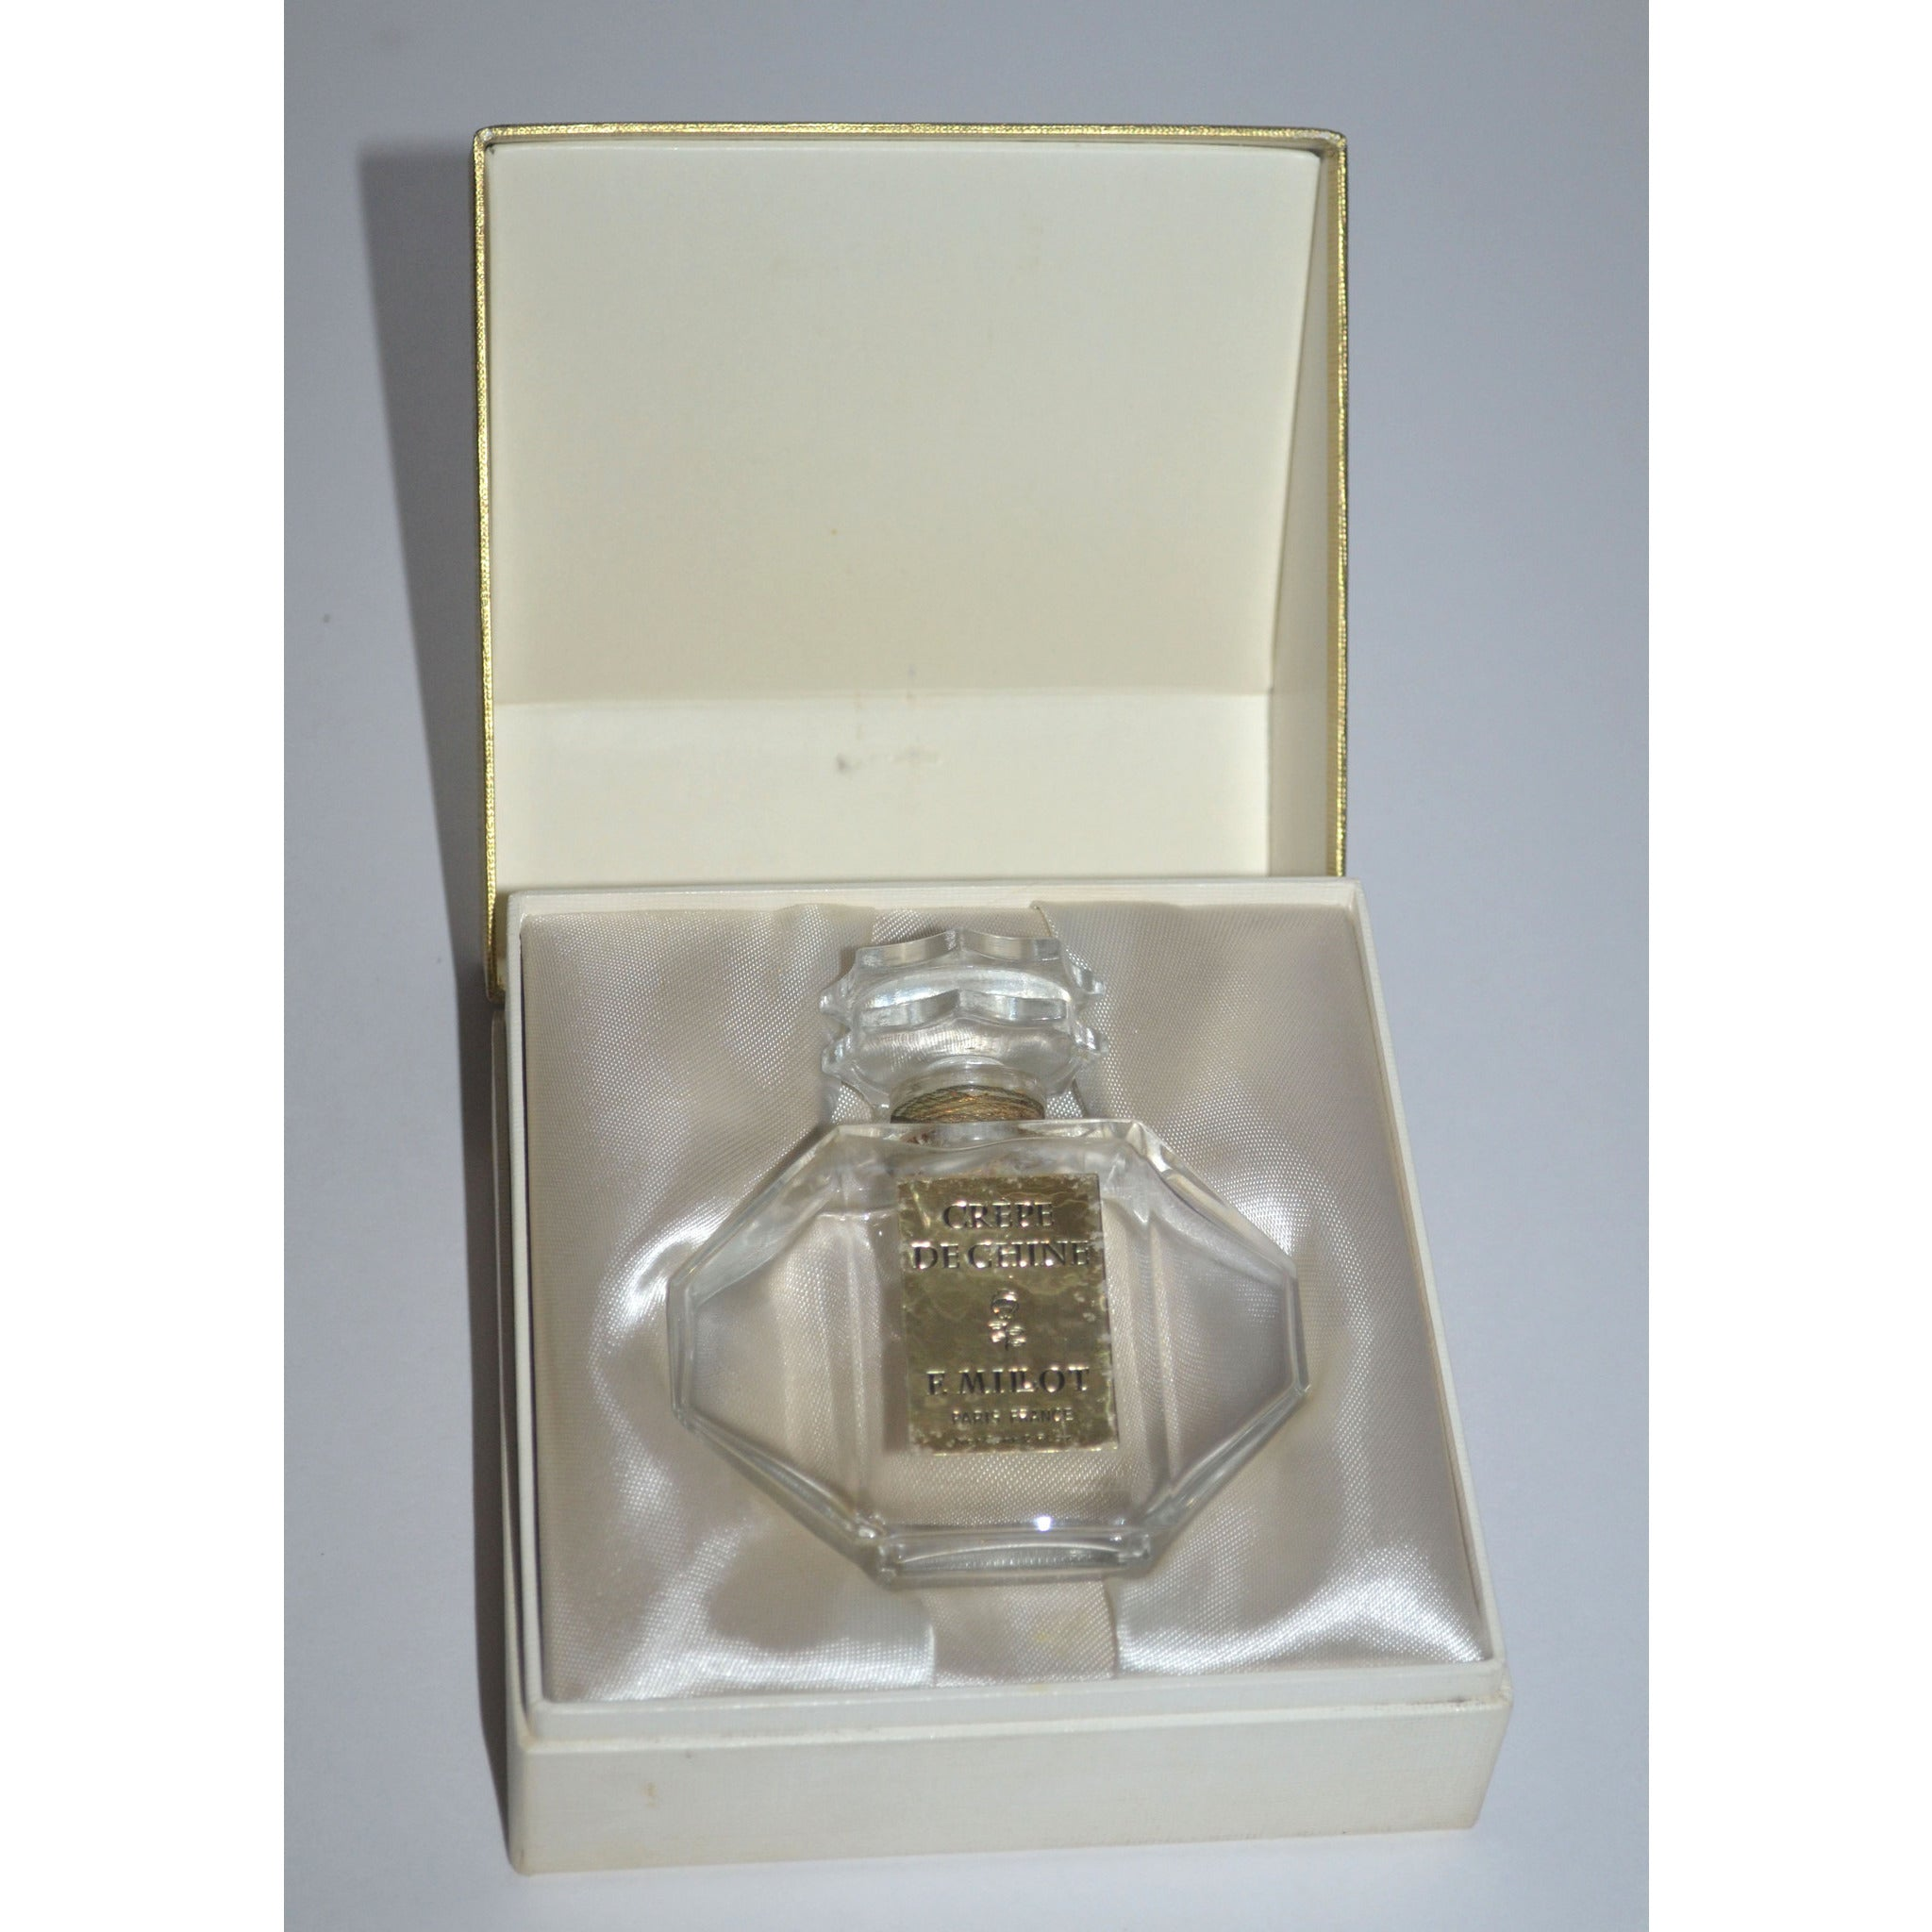 Vintage Crepe de Chine Perfume Bottle By F. Millot